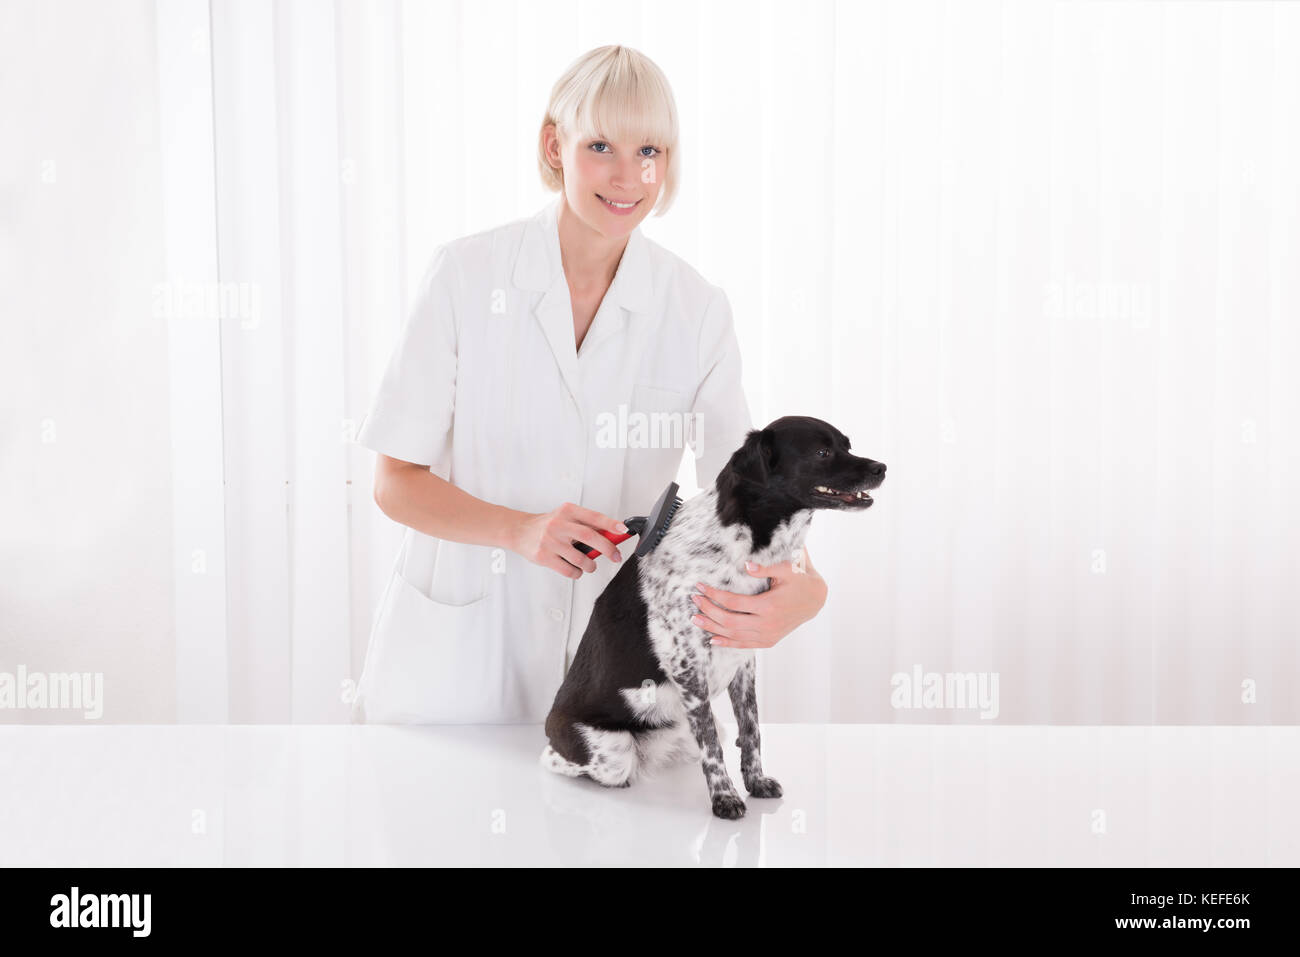 Young Happy Female Vet Grooming Dog's Hair - Stock Image